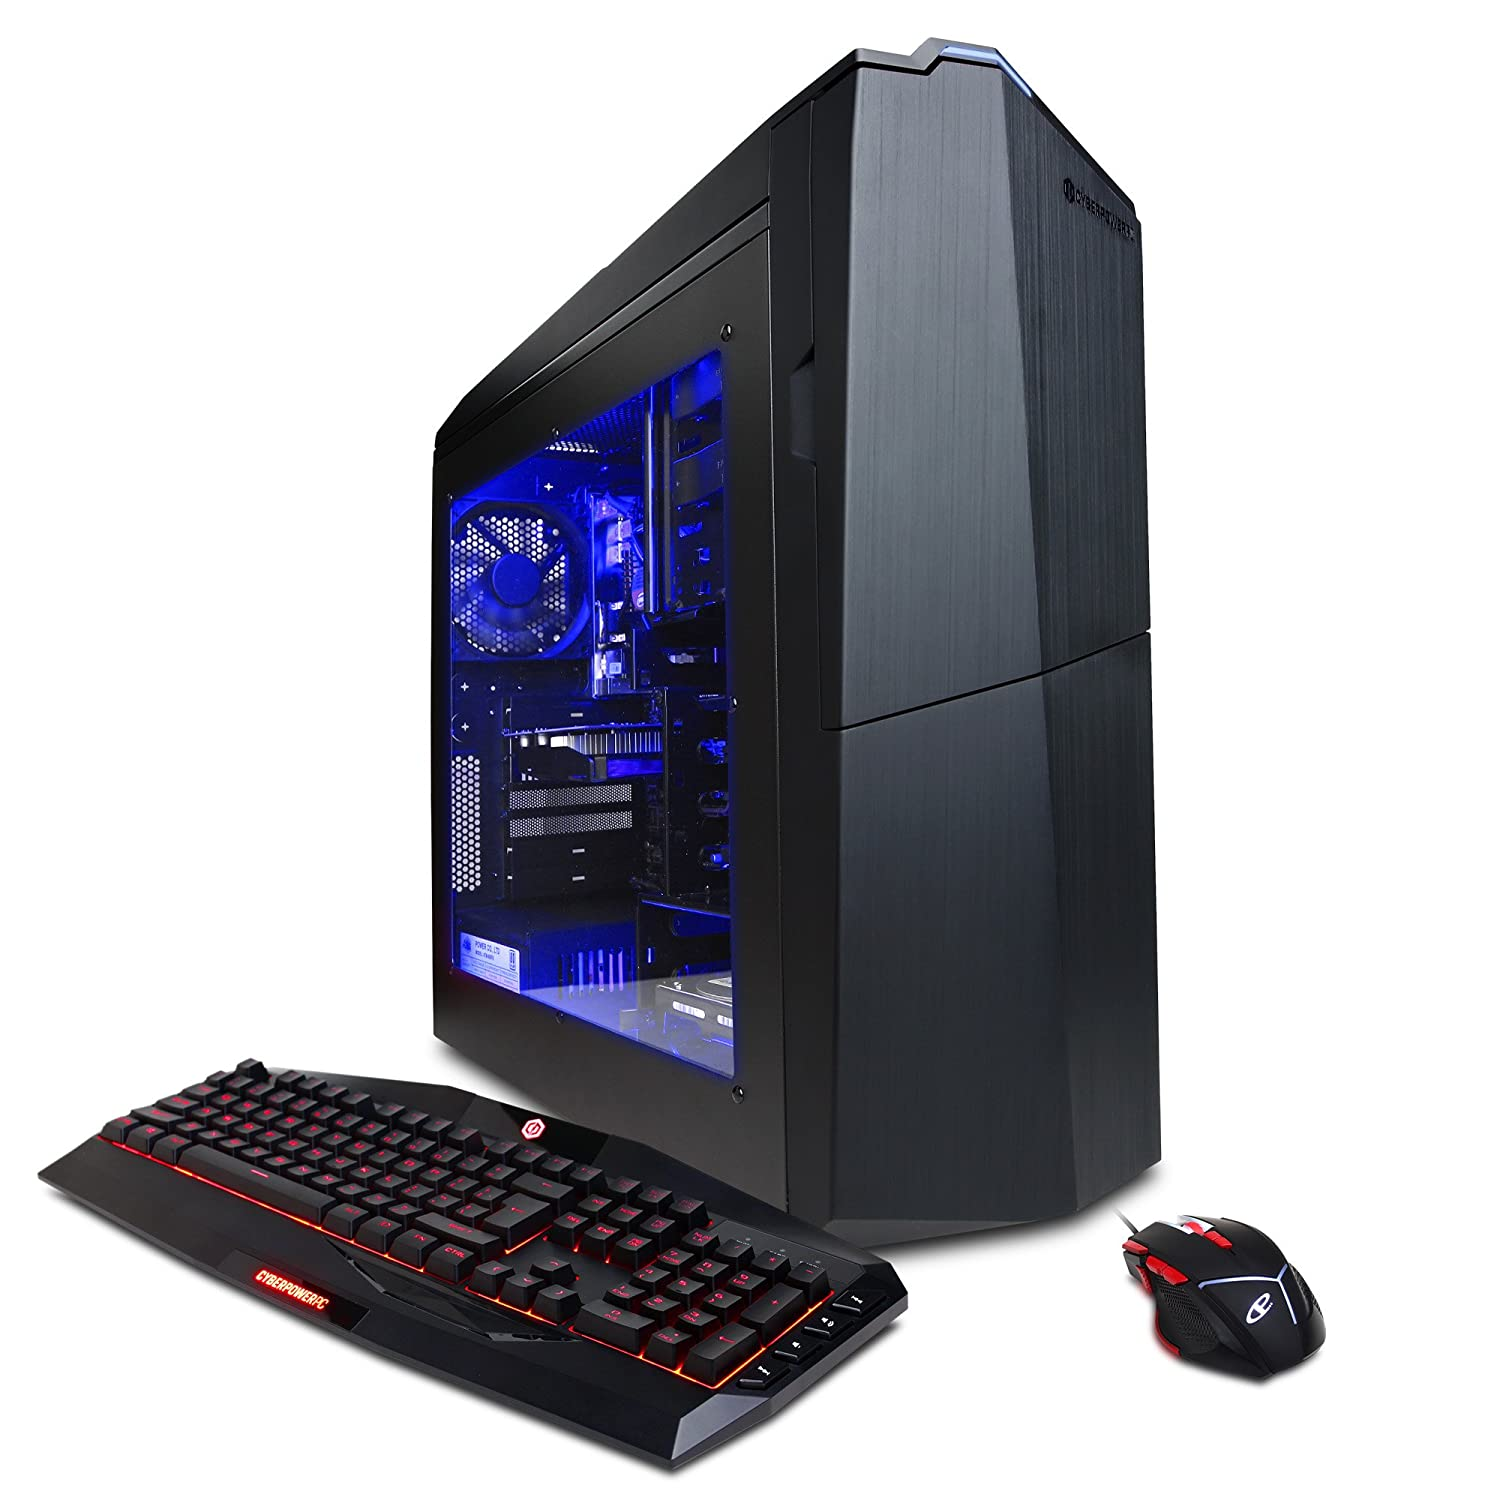 cyberpowerpc gamer xtreme vr gxivr2600q w liquid cooled. Black Bedroom Furniture Sets. Home Design Ideas